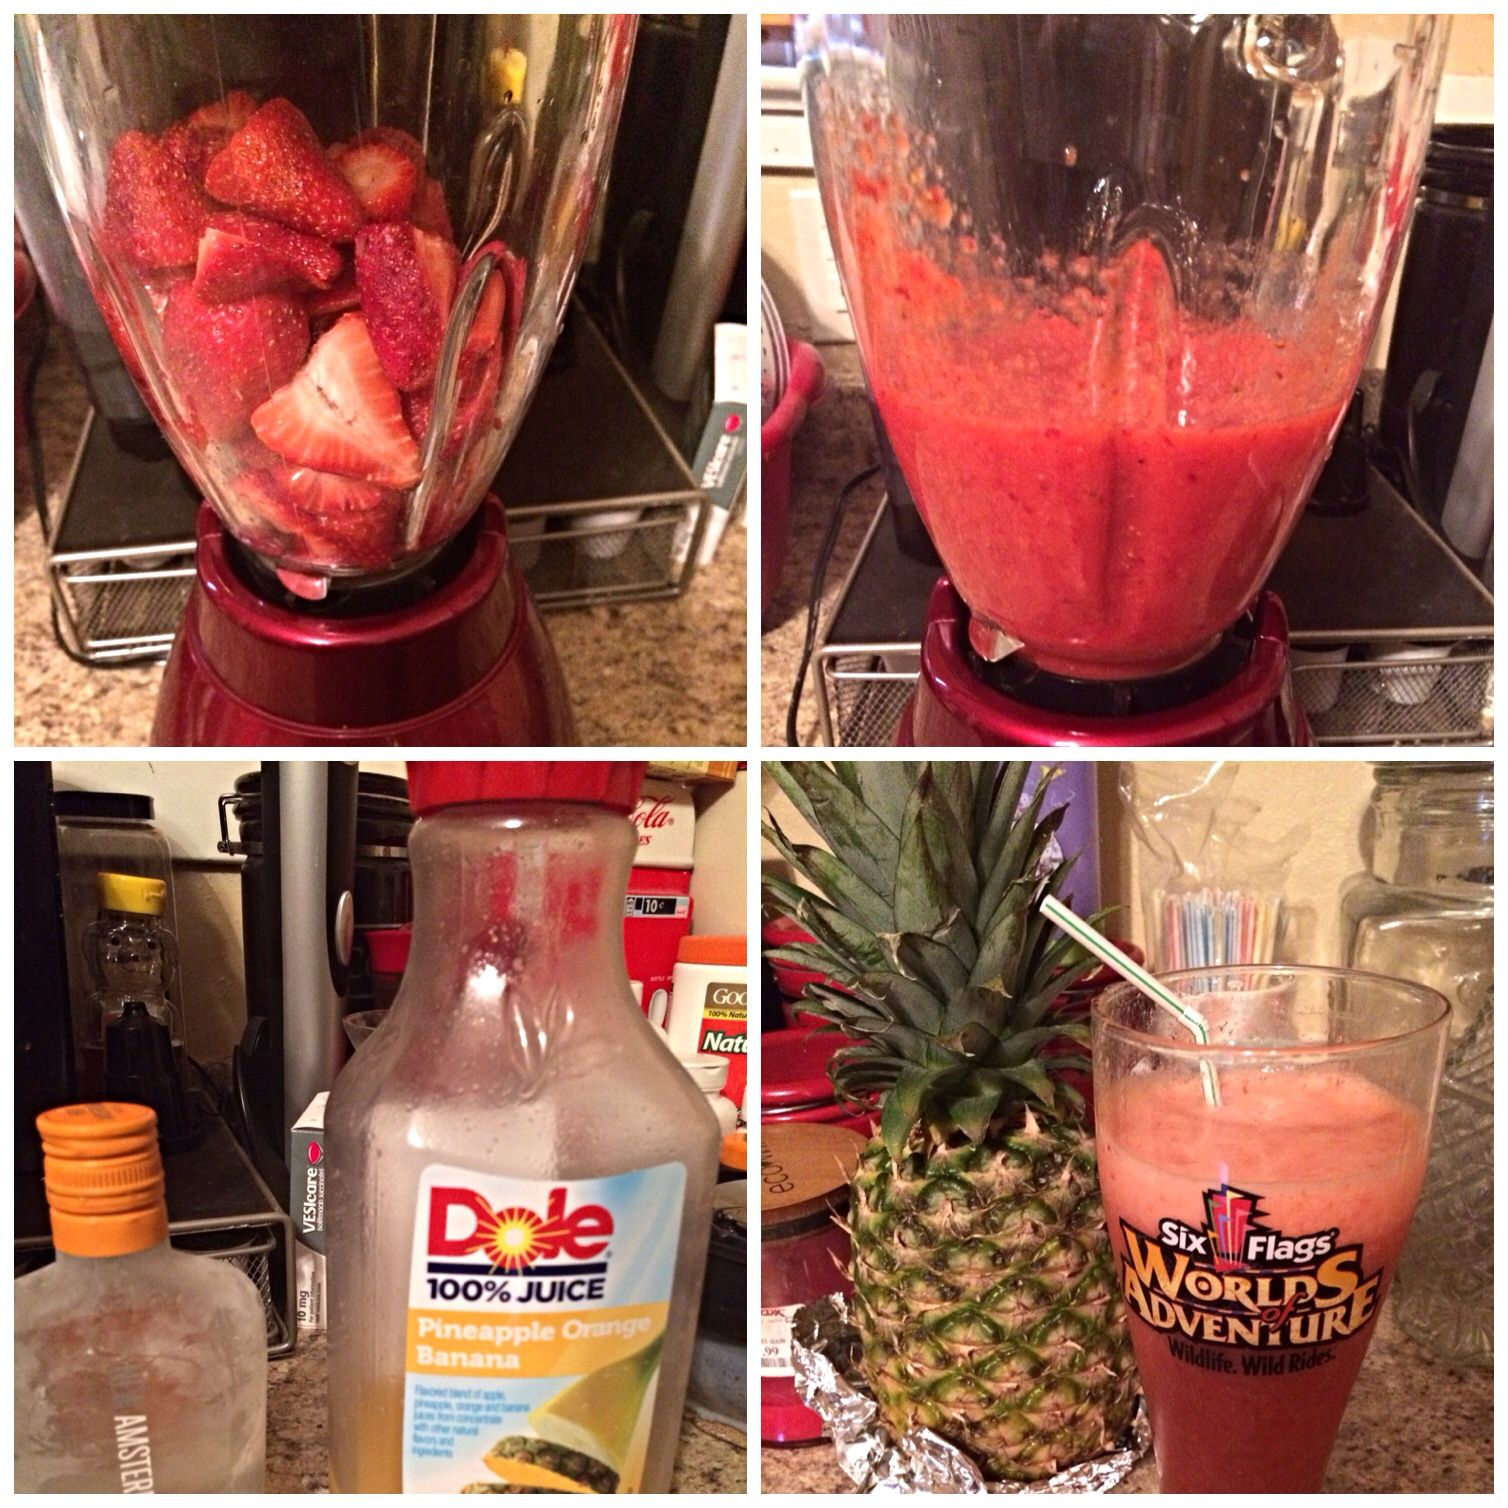 Strawberries Dole Pineapple Orange And Banana Juice Amsterdam Peach Vodka A Frozen Strawberry M Peach Drinks Drinks Alcohol Recipes Mixed Drinks Recipes